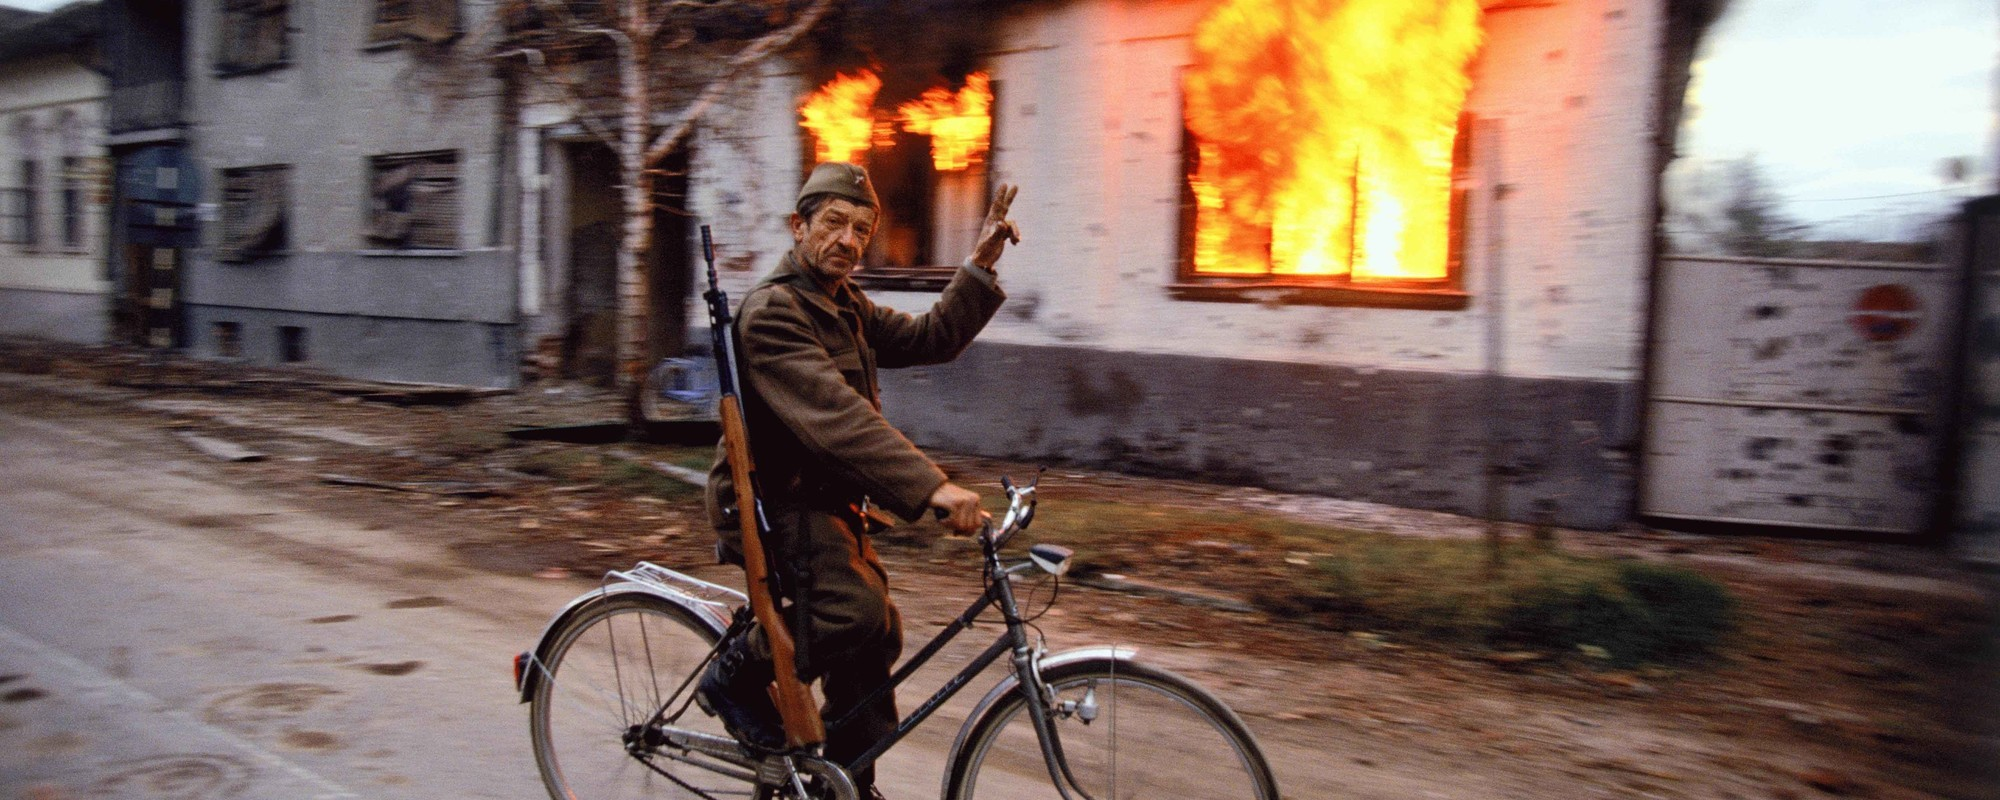 A Photographer Looks Back on the Horrors of the Bosnian War